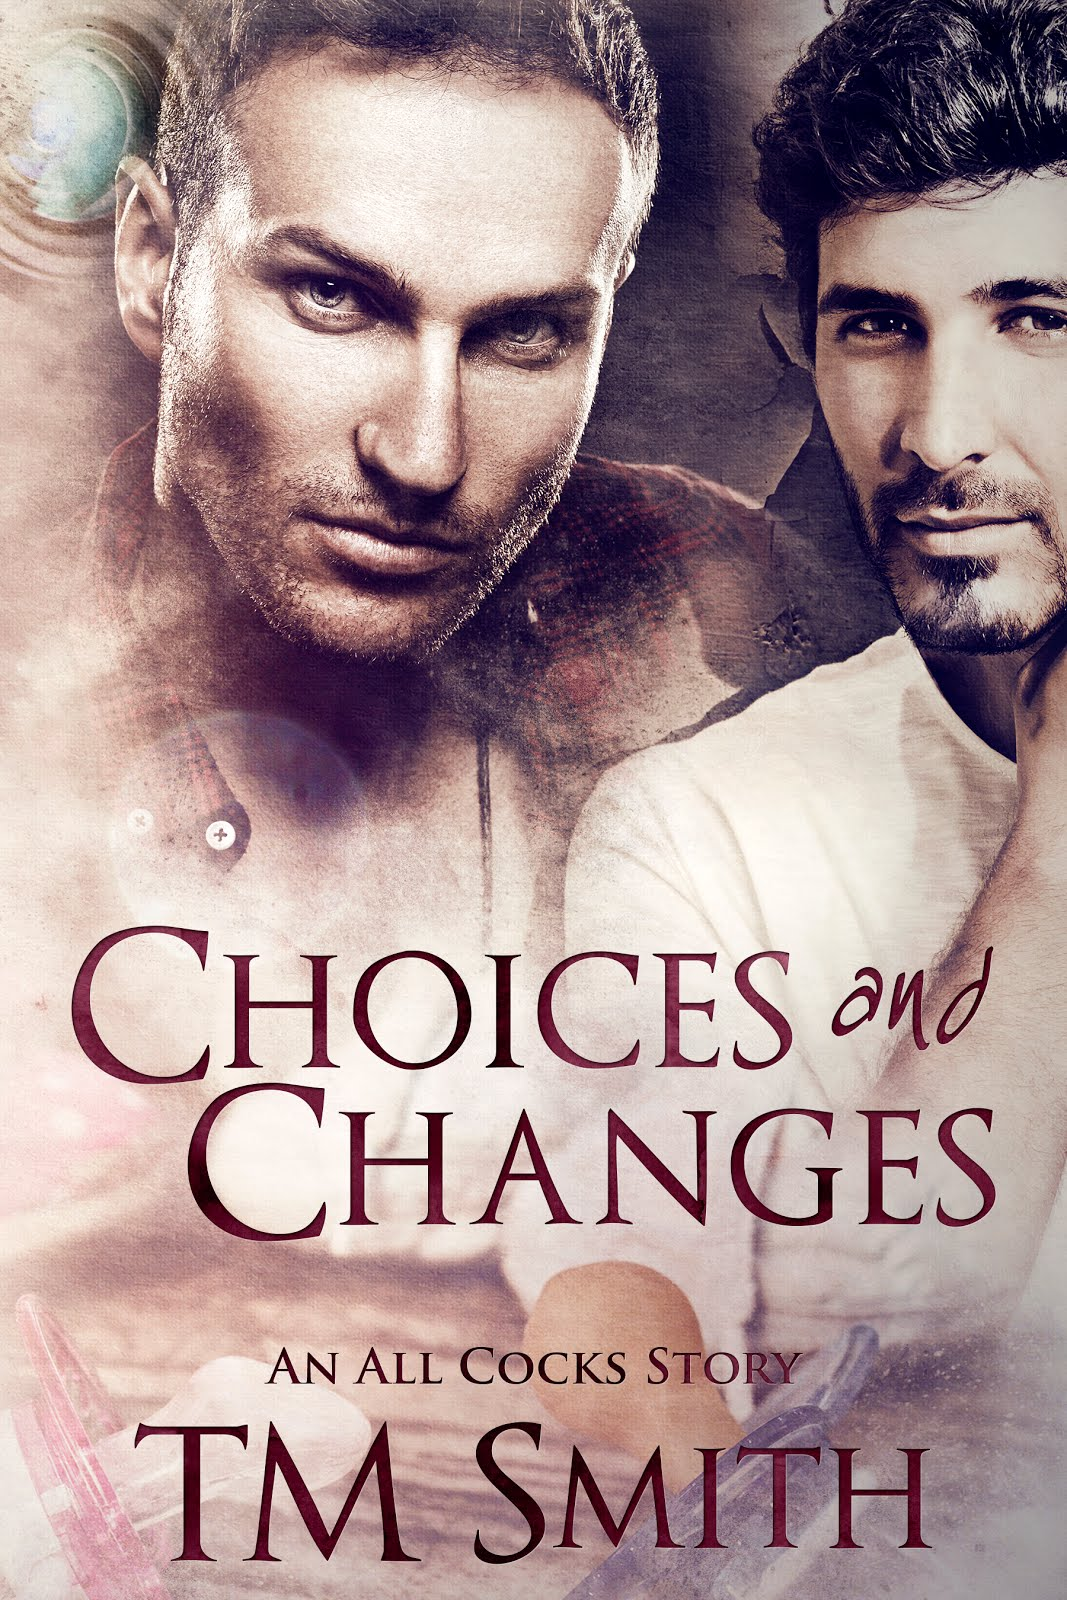 Choices and Changes out now!